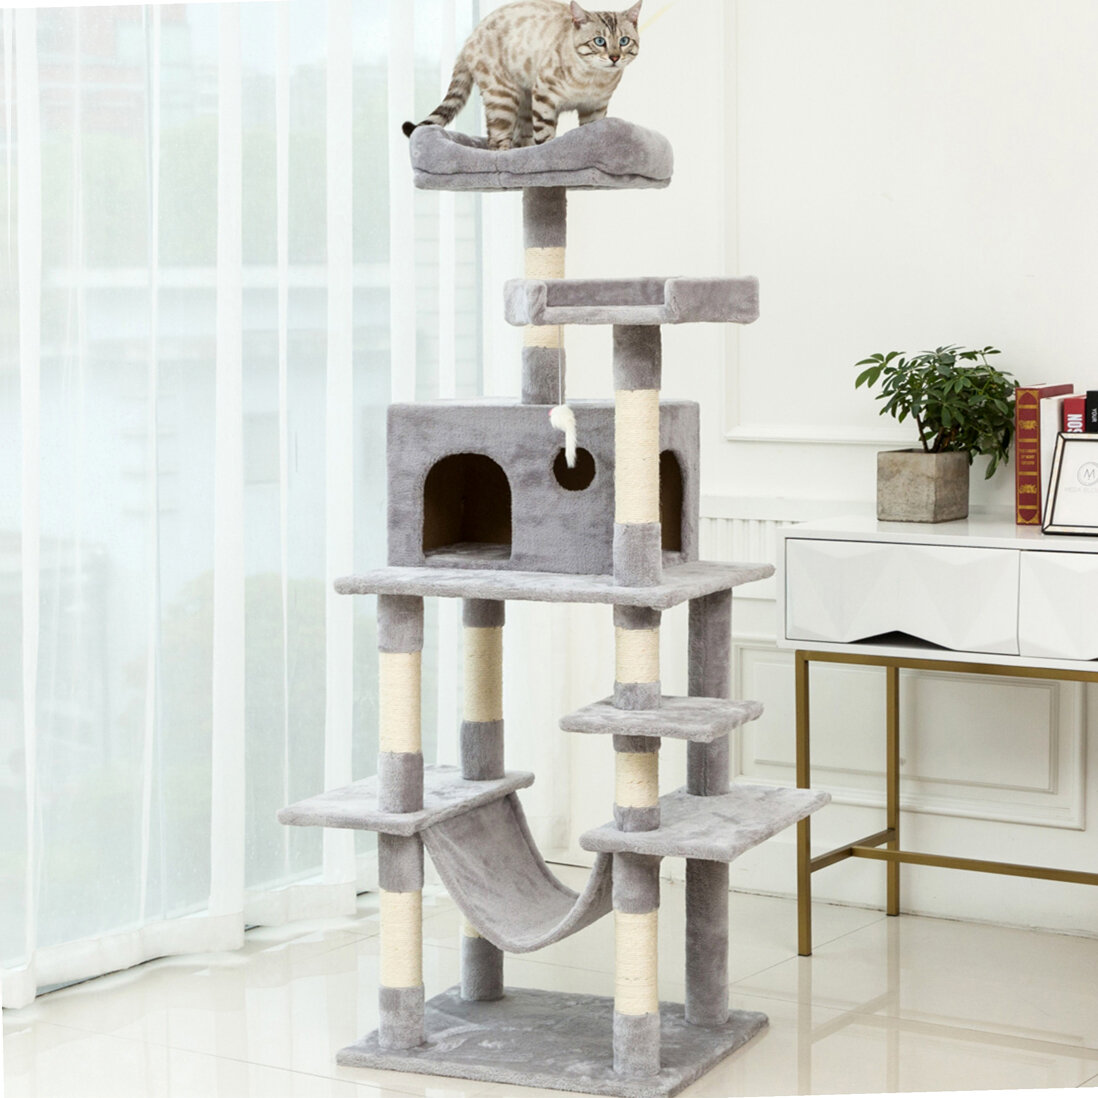 Ballshop Cat Tree Tower Sisal Bed Toys Climbing Scratcher Tower Scratching Post Climber House Cat Play Tower Activity Centre with Sisal Covered Scratching Posts /& Dangling Mice Toys Beige